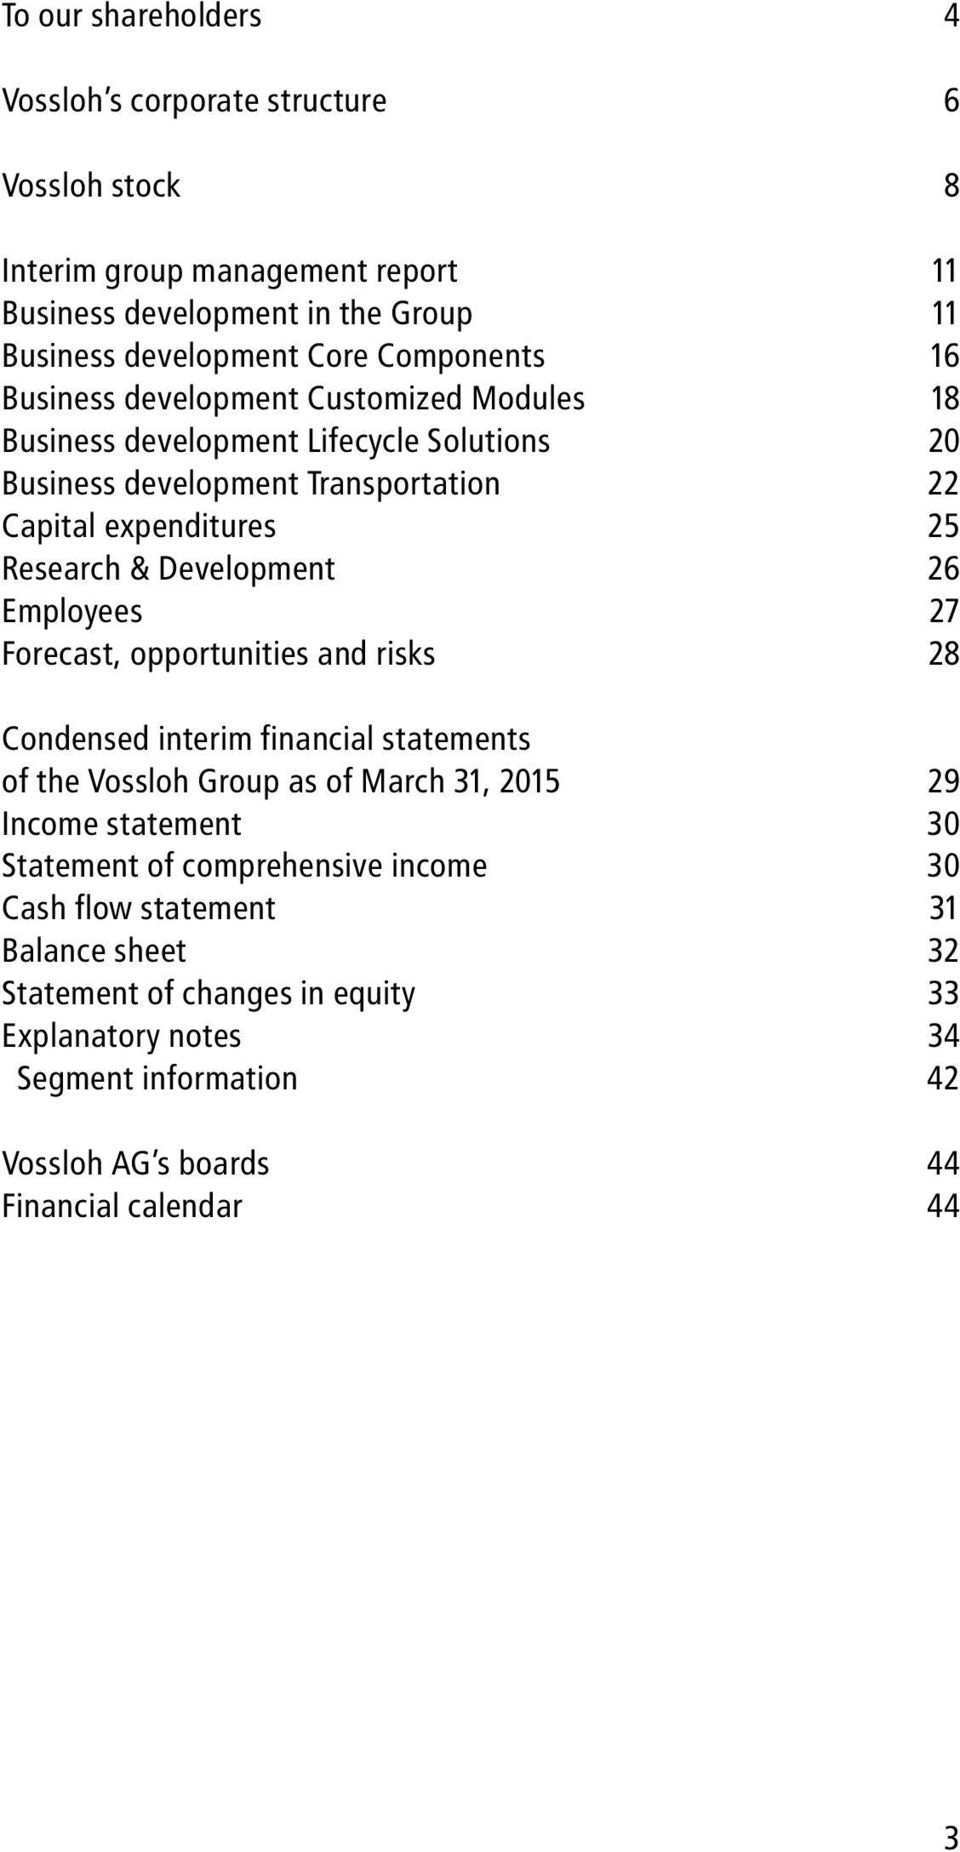 Employees 27 Forecast, opportunities and risks 28 Condensed interim financial statements of the Vossloh Group as of March 31, 2015 29 Income statement 30 Statement of